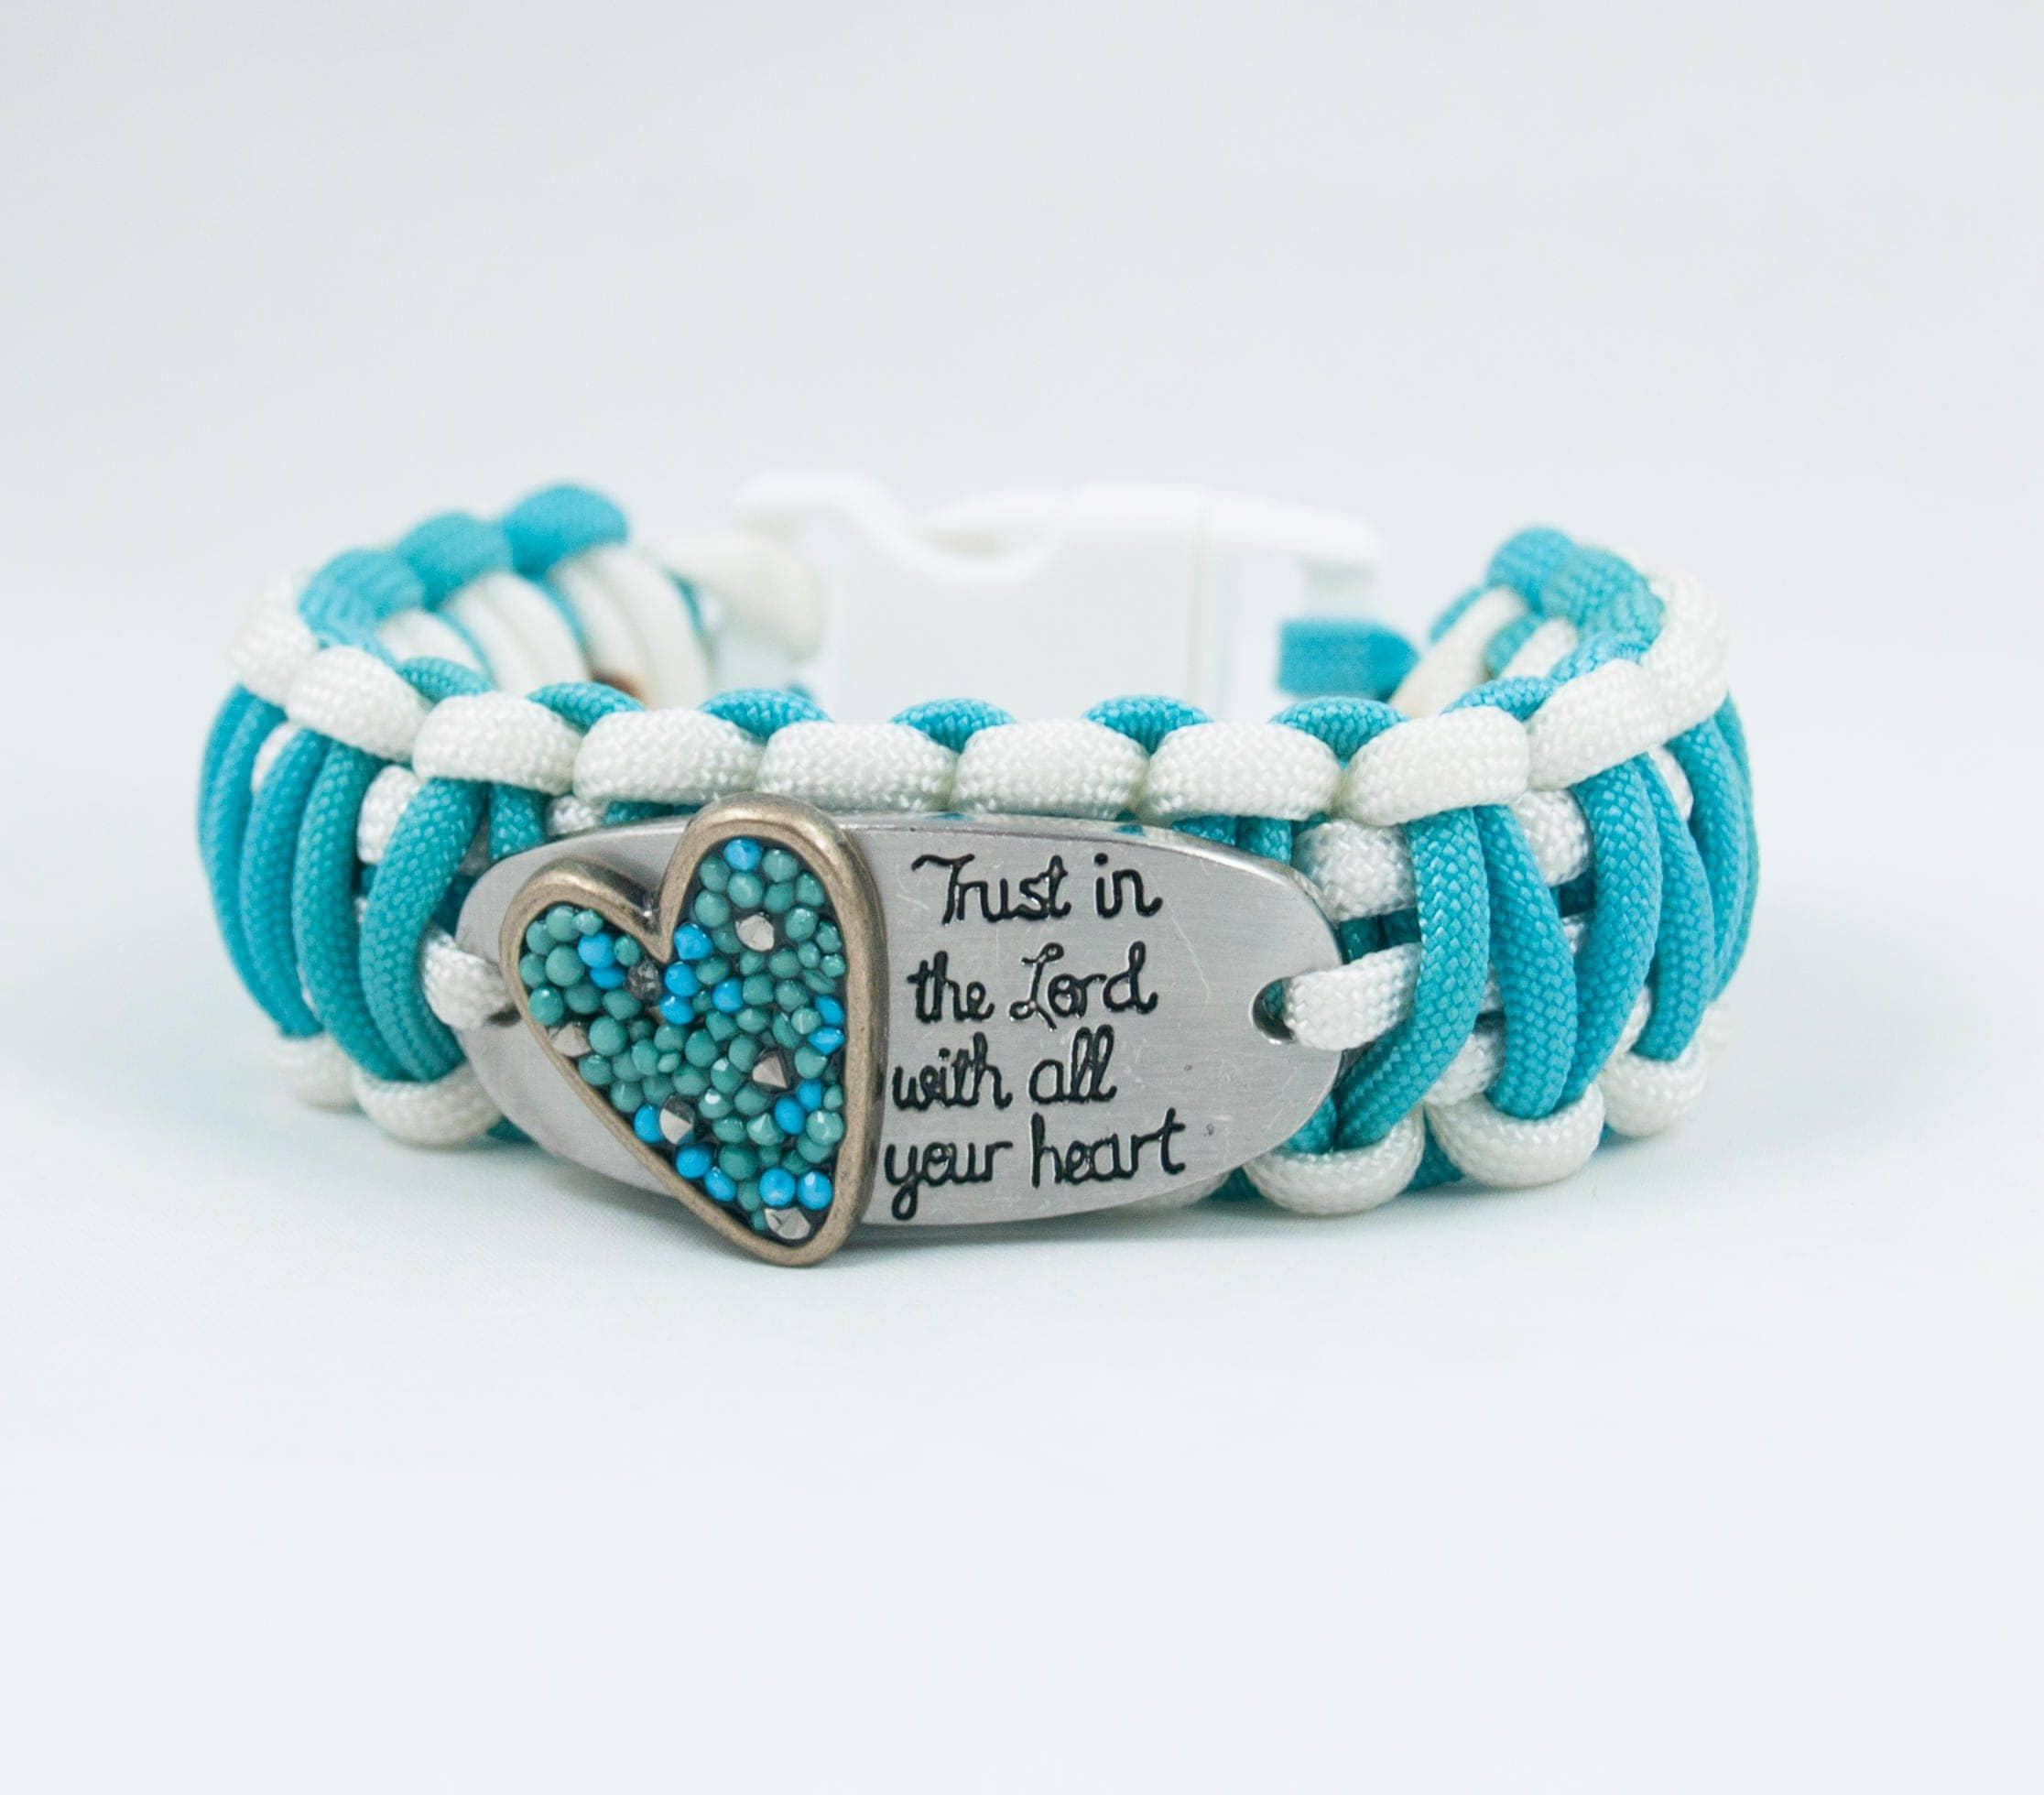 the church heart fullxfull turquoise bracelet trust lord god religious inspirational quote quotes faith p gifts il in paracord